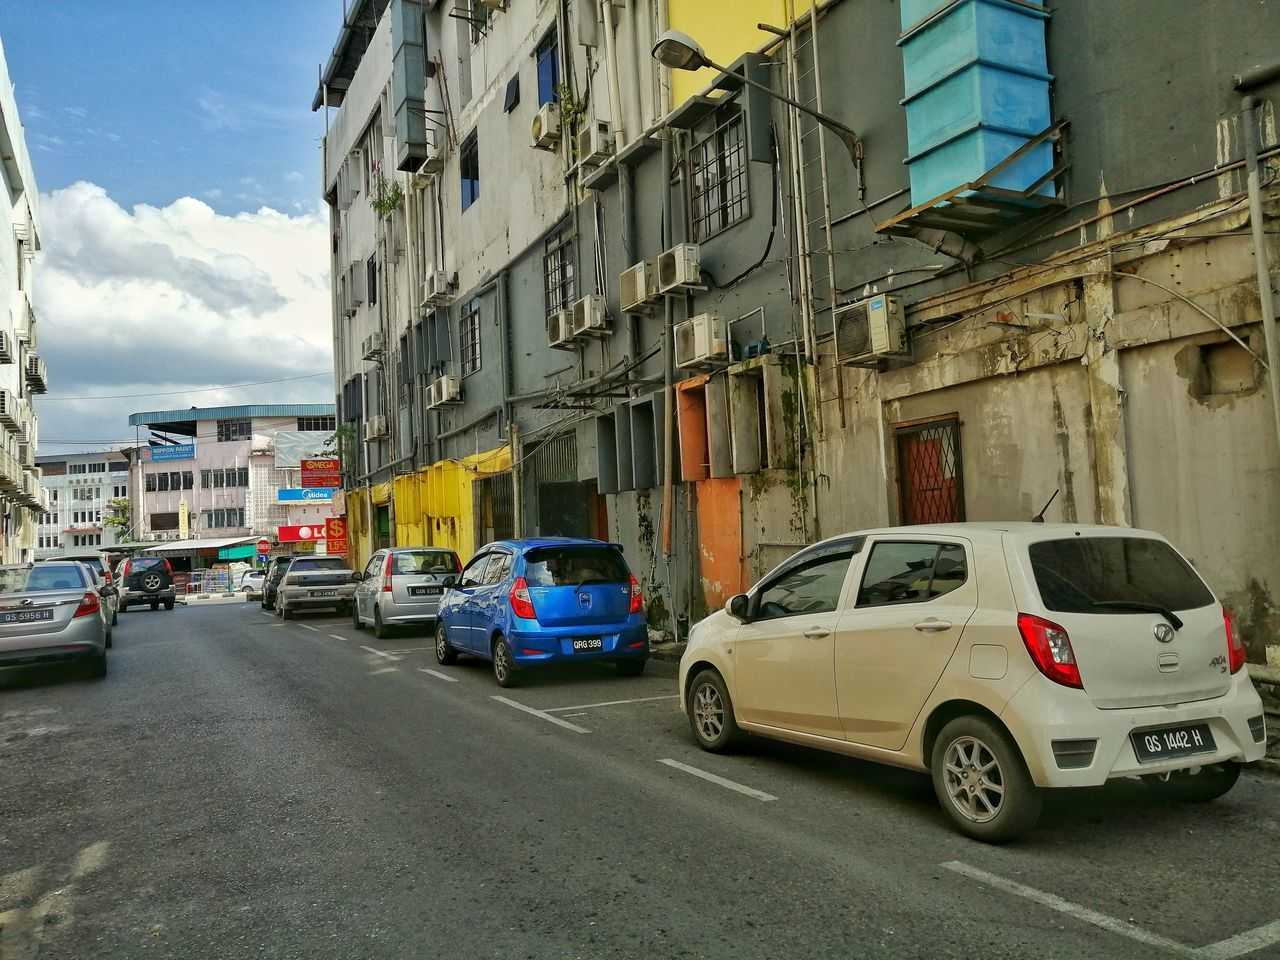 TRAFFIC ON ROAD BY BUILDINGS IN CITY